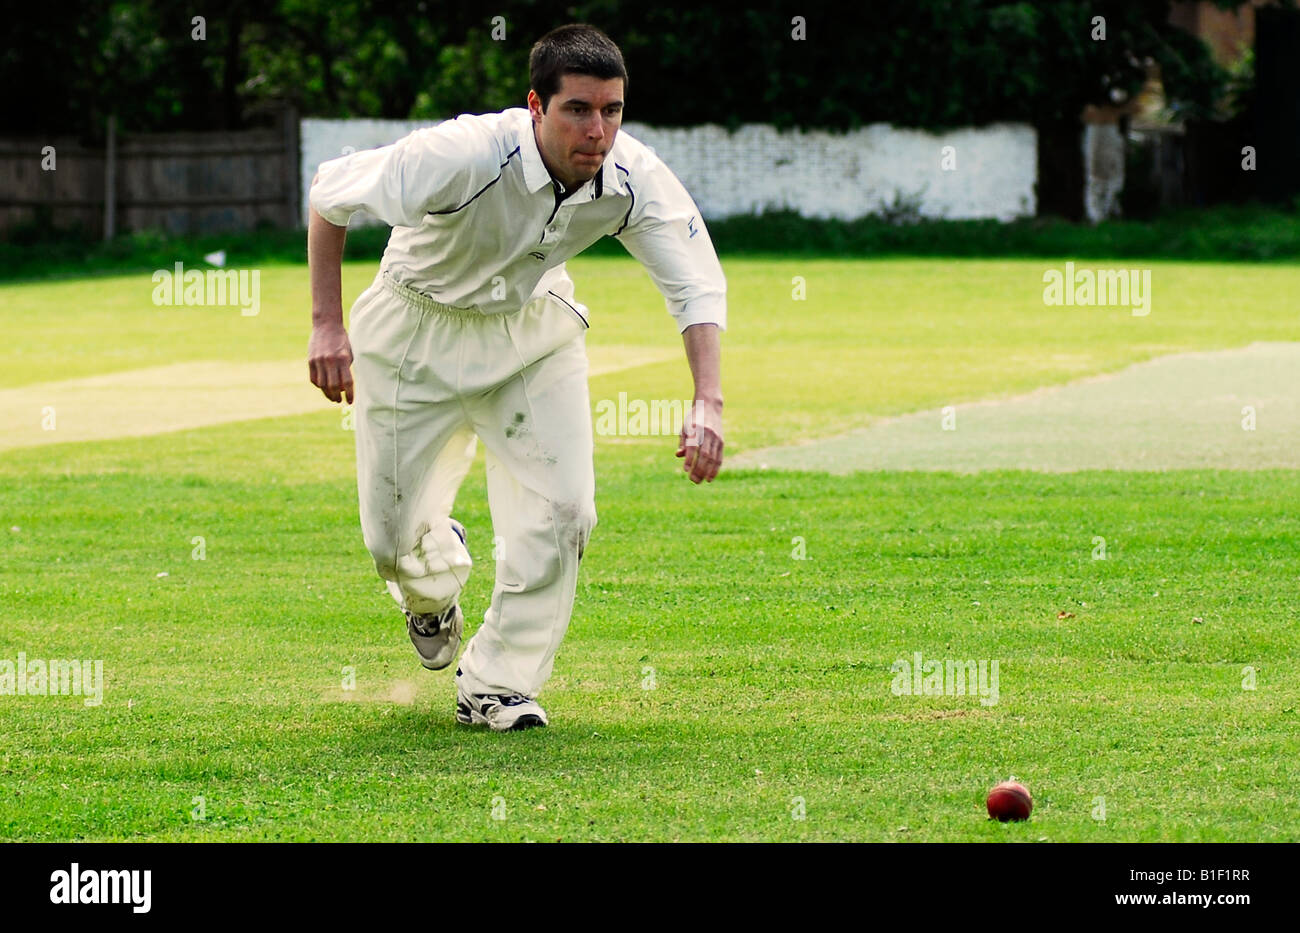 Player fielding during an amateur cricket game, Isleworth, Middlesex, UK. - Stock Image